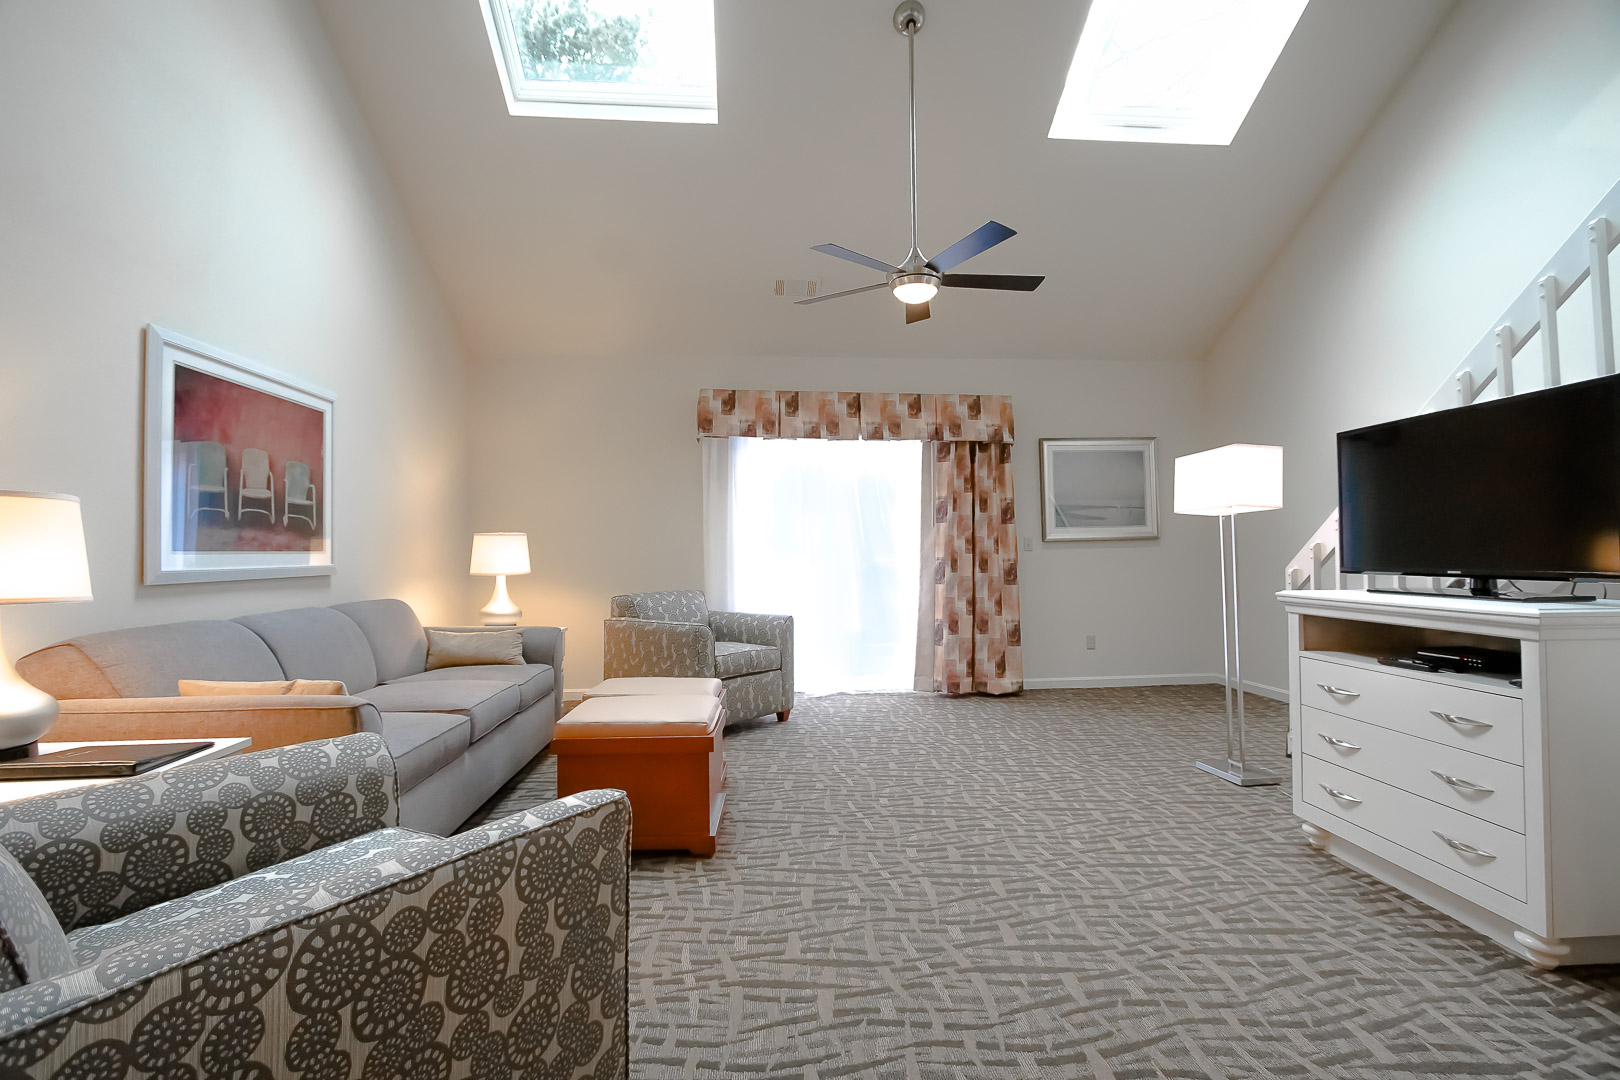 A spacious living room area at VRI's Sea Mist Resort in Massachusetts.